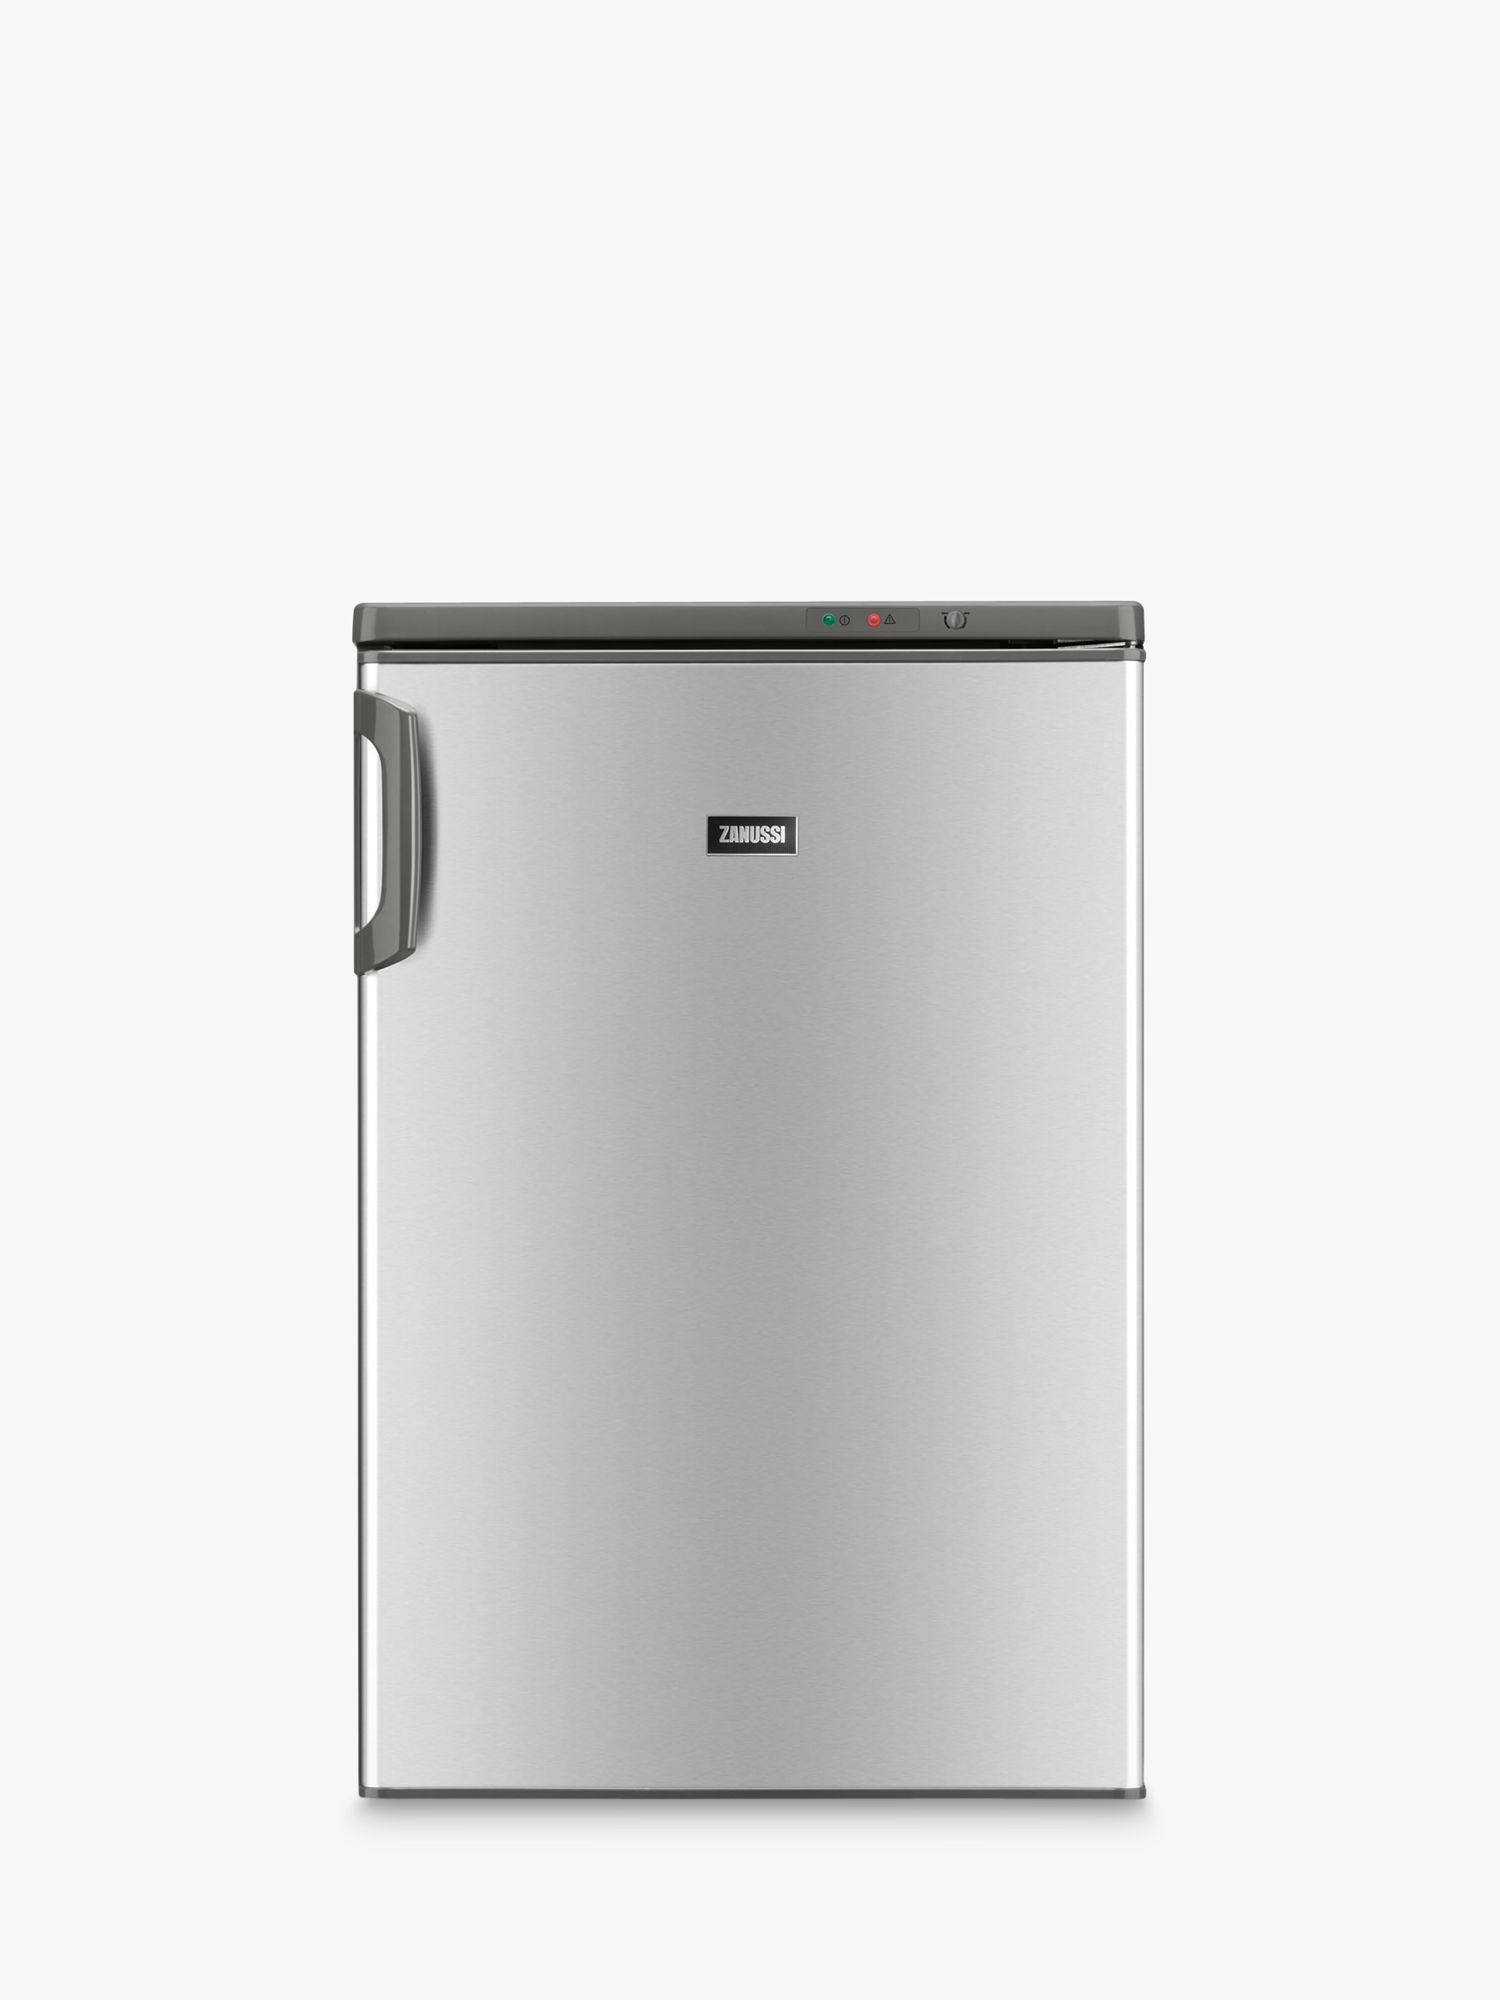 Zanussi Zanussi ZFT11105XV Freestanding Freezer, A+ Energy Rating, 55cm Wide, Stainless Steel Look